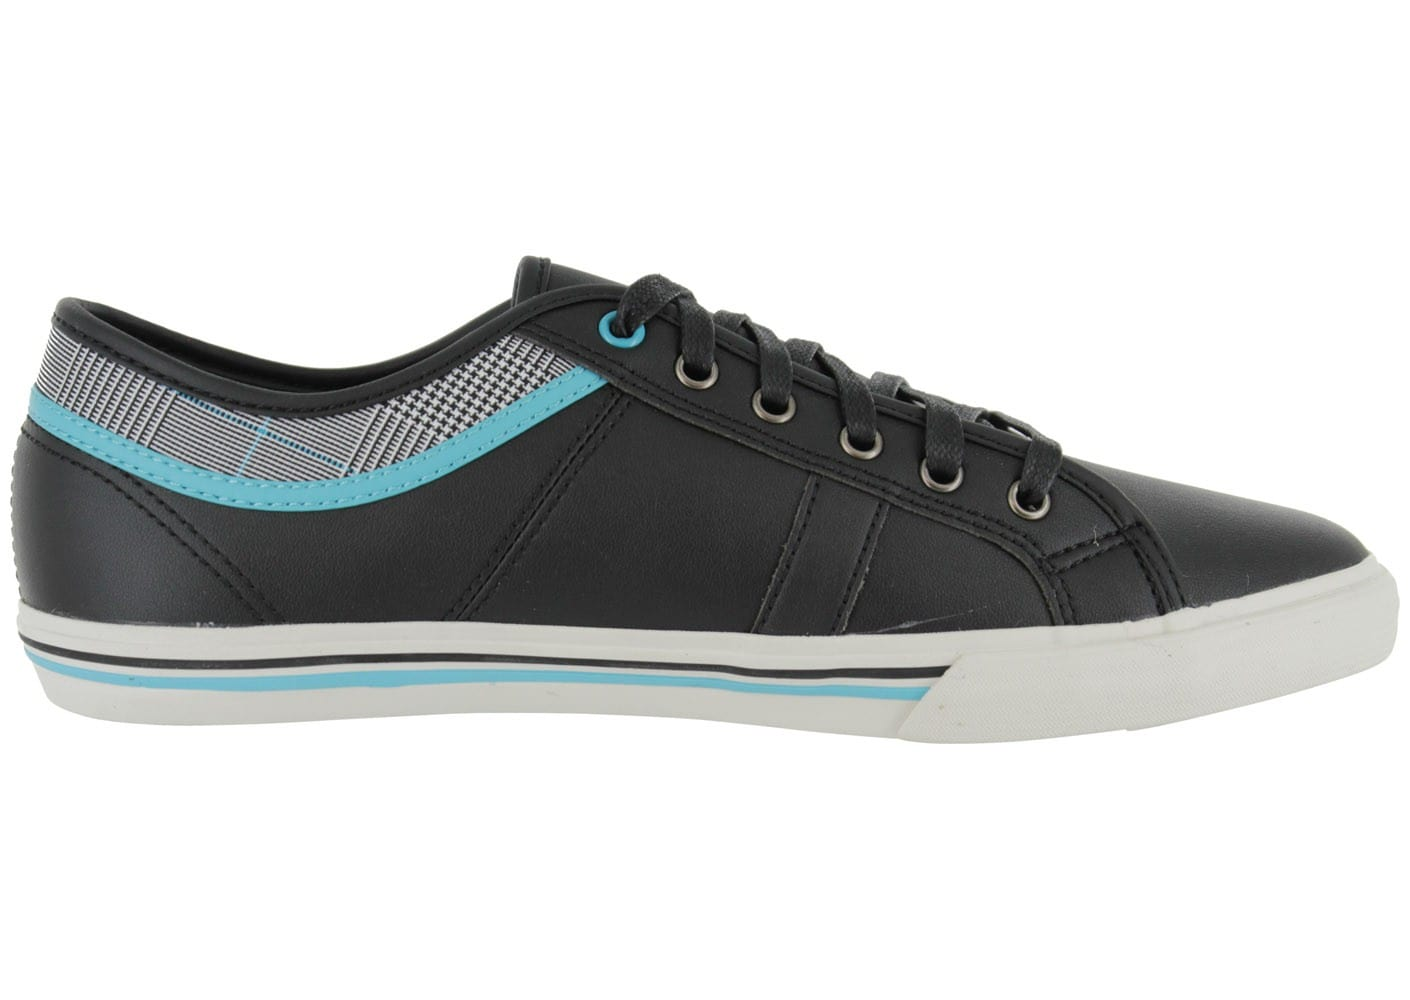 le coq sportif ferdinand noir chaussures homme chausport. Black Bedroom Furniture Sets. Home Design Ideas